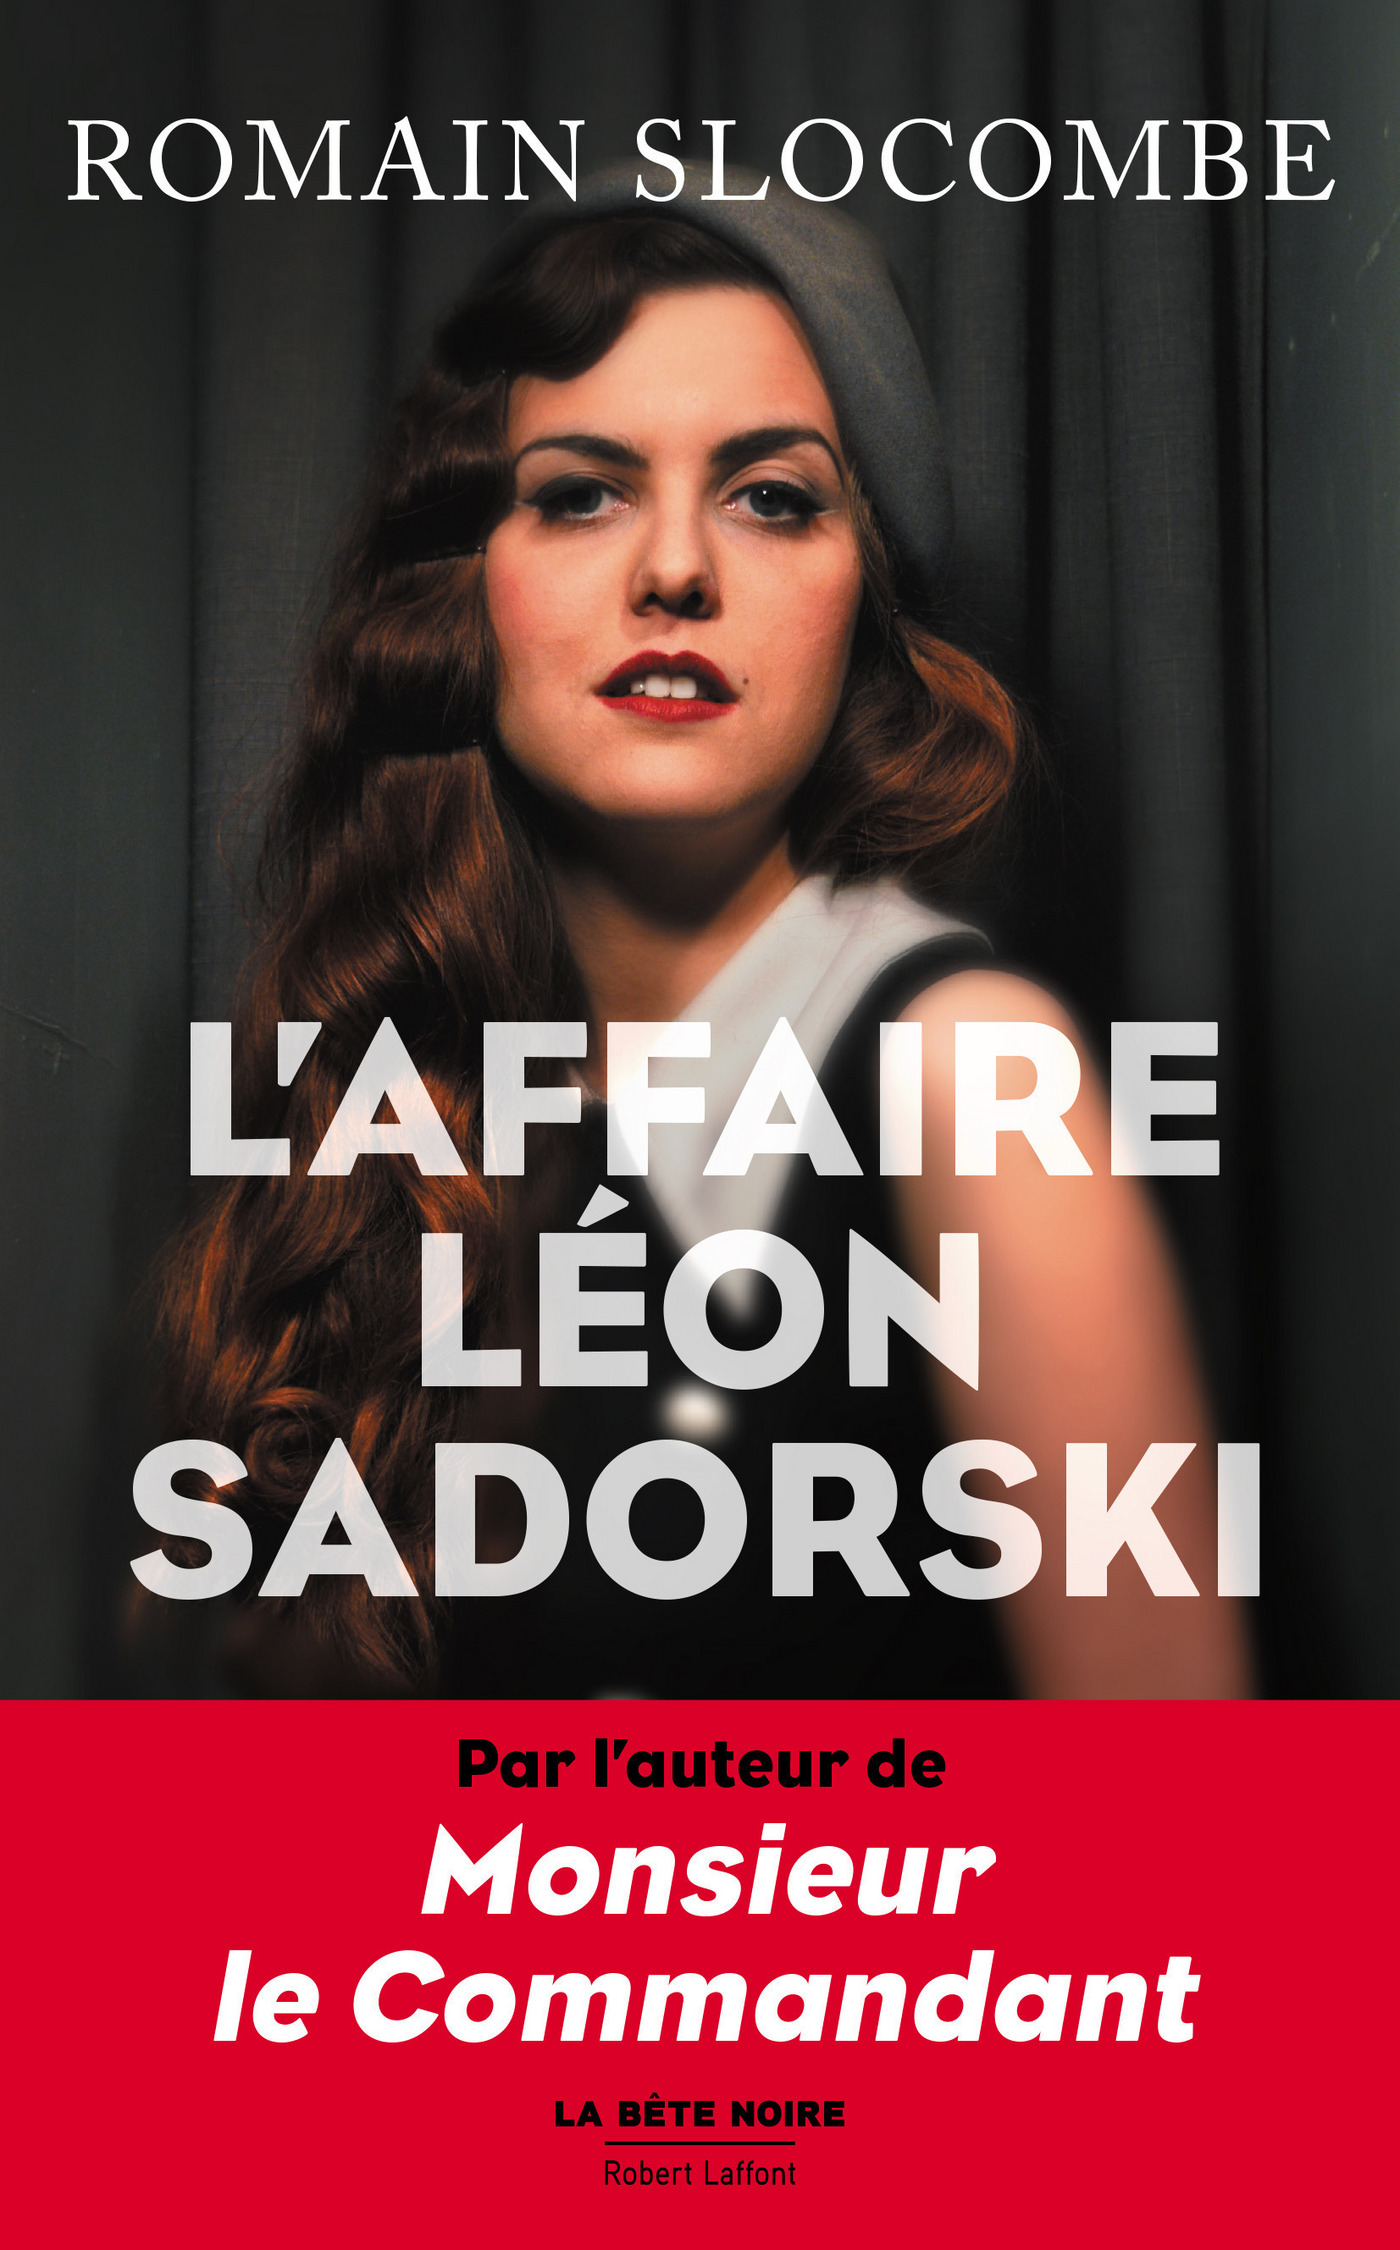 L'Affaire L?on Sadorski